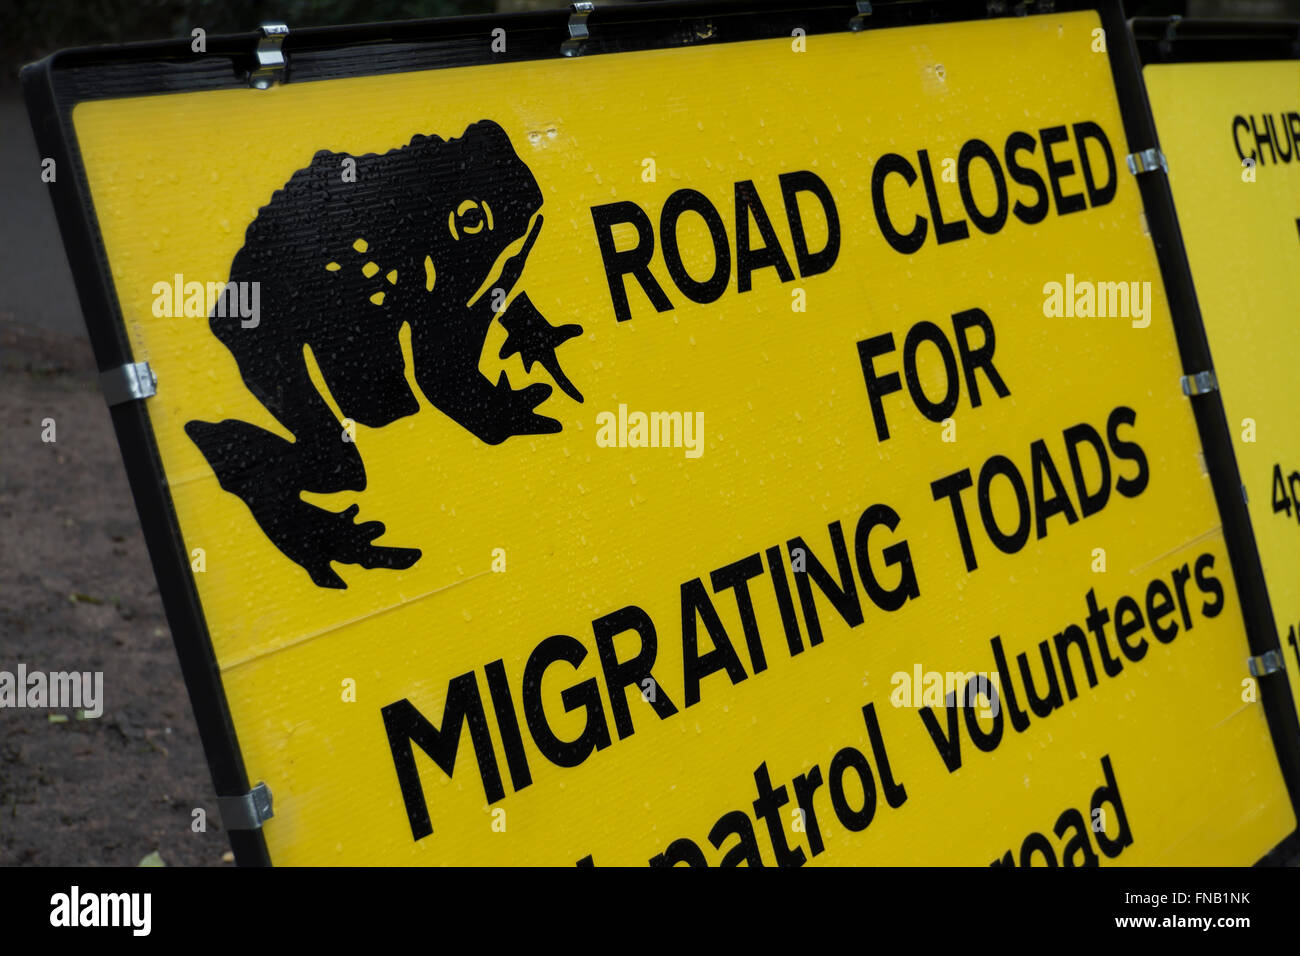 road closed for migrating toads signs, ham, surrey, england - Stock Image